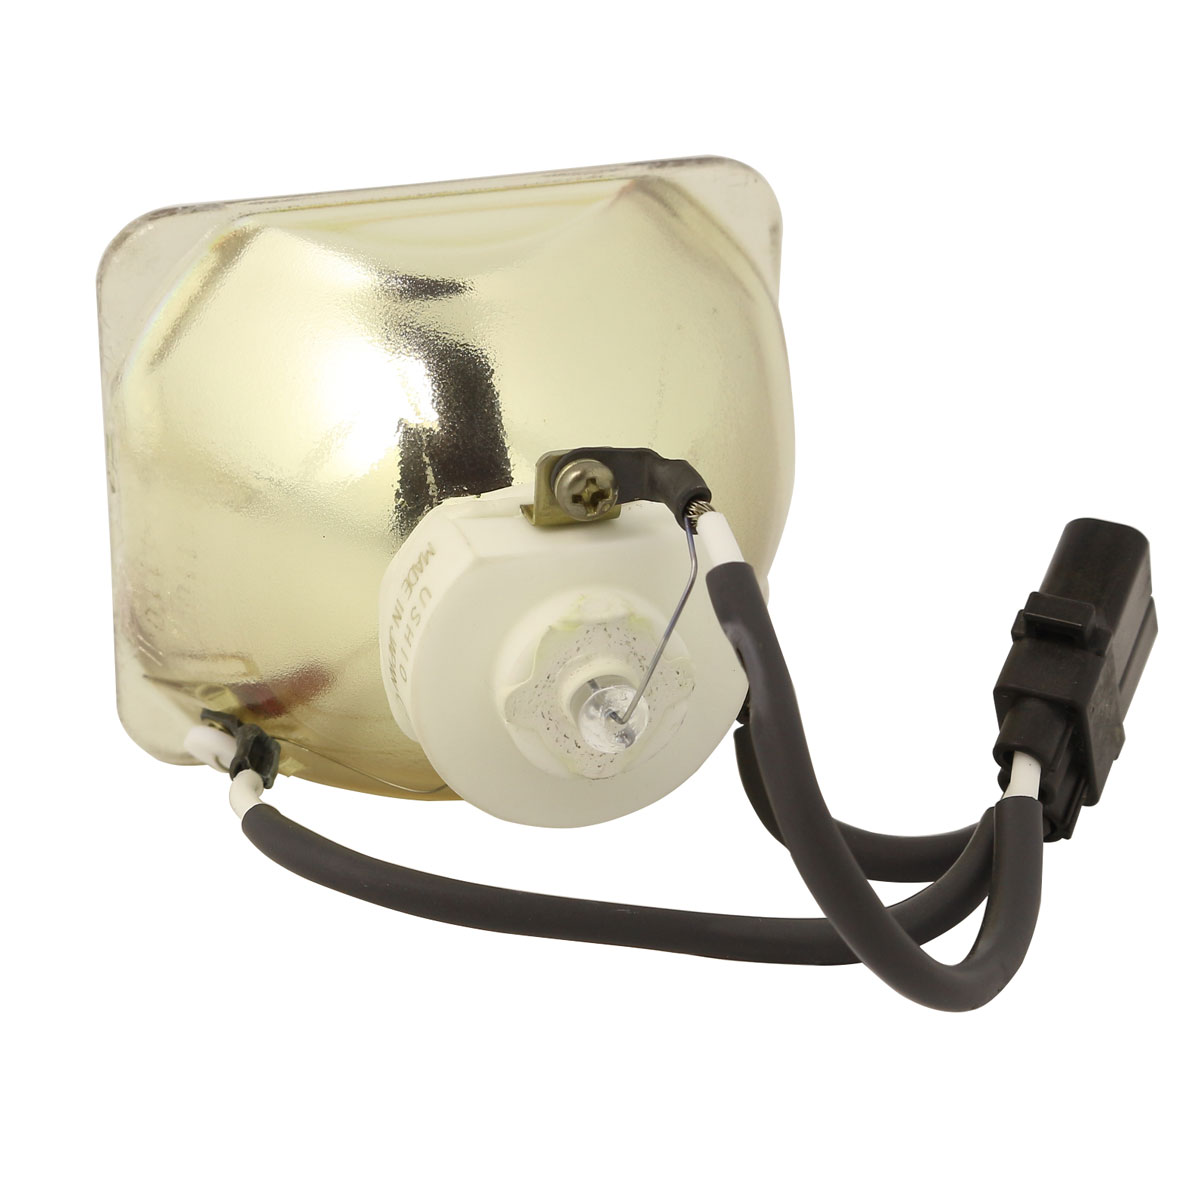 Lutema Platinum Bulb for Canon XEED SX7 Mark II Projector (Lamp Only) - image 2 of 5